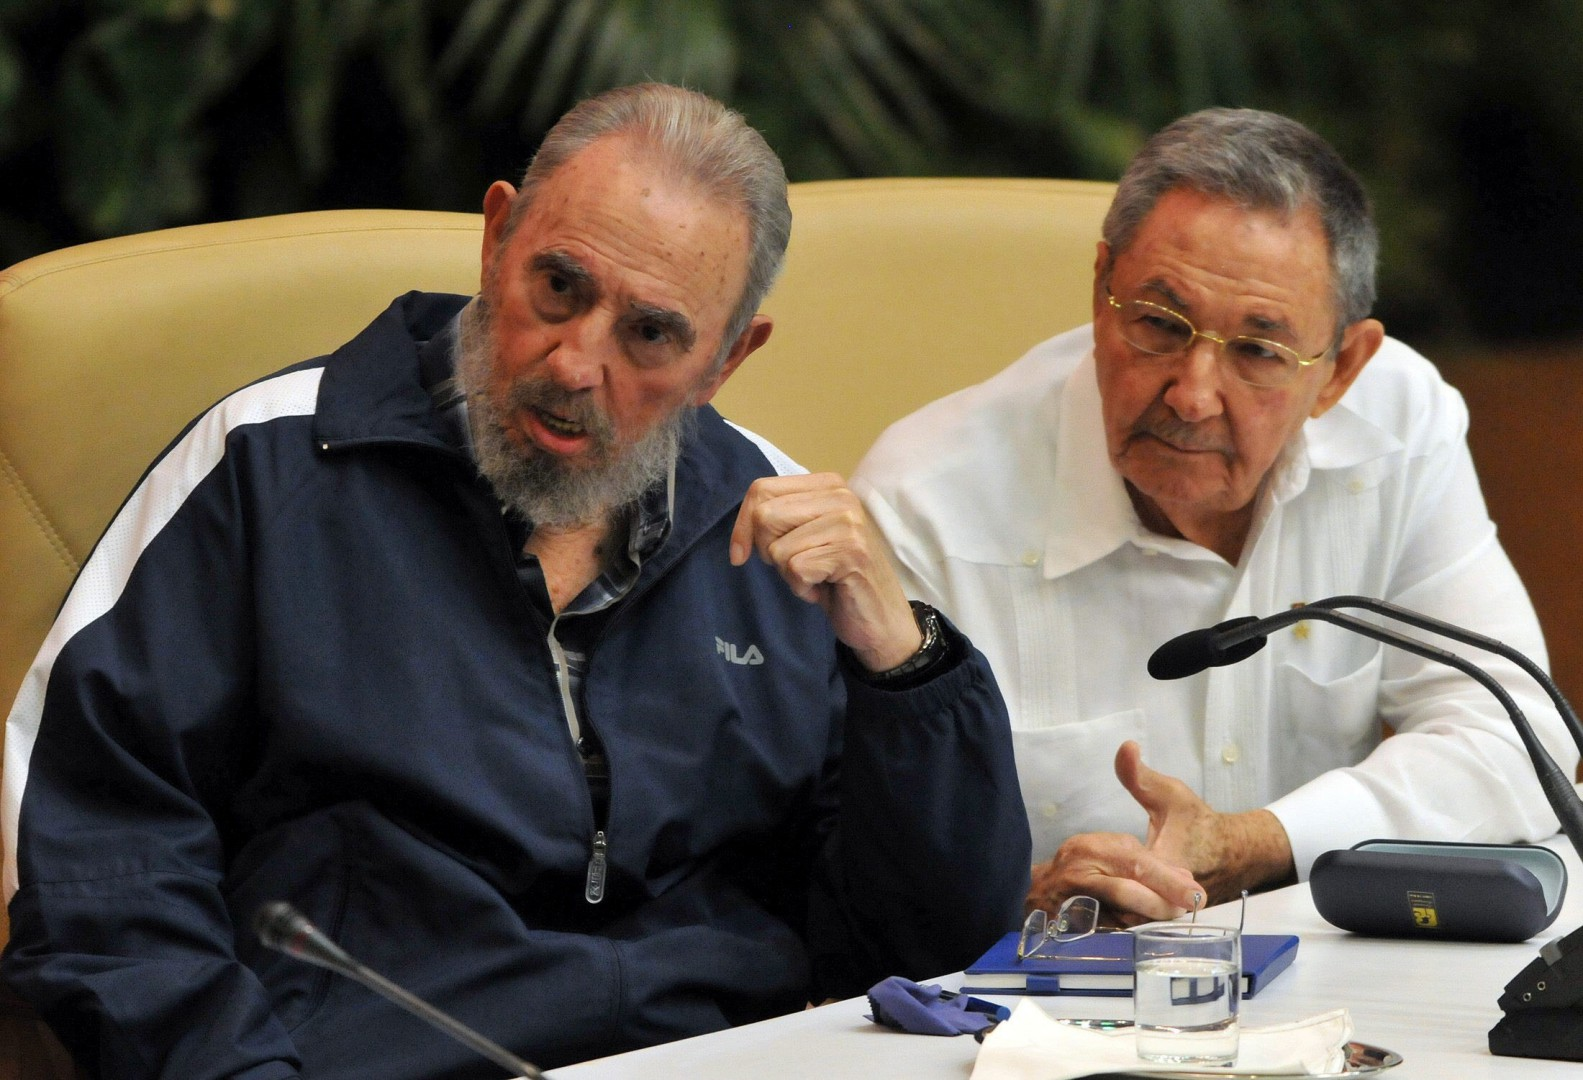 lapresse - fidel Raul castro - A file picture shows Cuban leader Fidel Castro and his brother, the President of Cuba Raul Castro (R), during an event in Havana, Cuba, 19 April 2006. Current Cuban president, Raul Castro, announced on 25 November 2016 his brother's death on the Cuban state TV. Cuban former President Fidel Castro has died at the age of 90. EFE/Alejandro Ernesto FILE